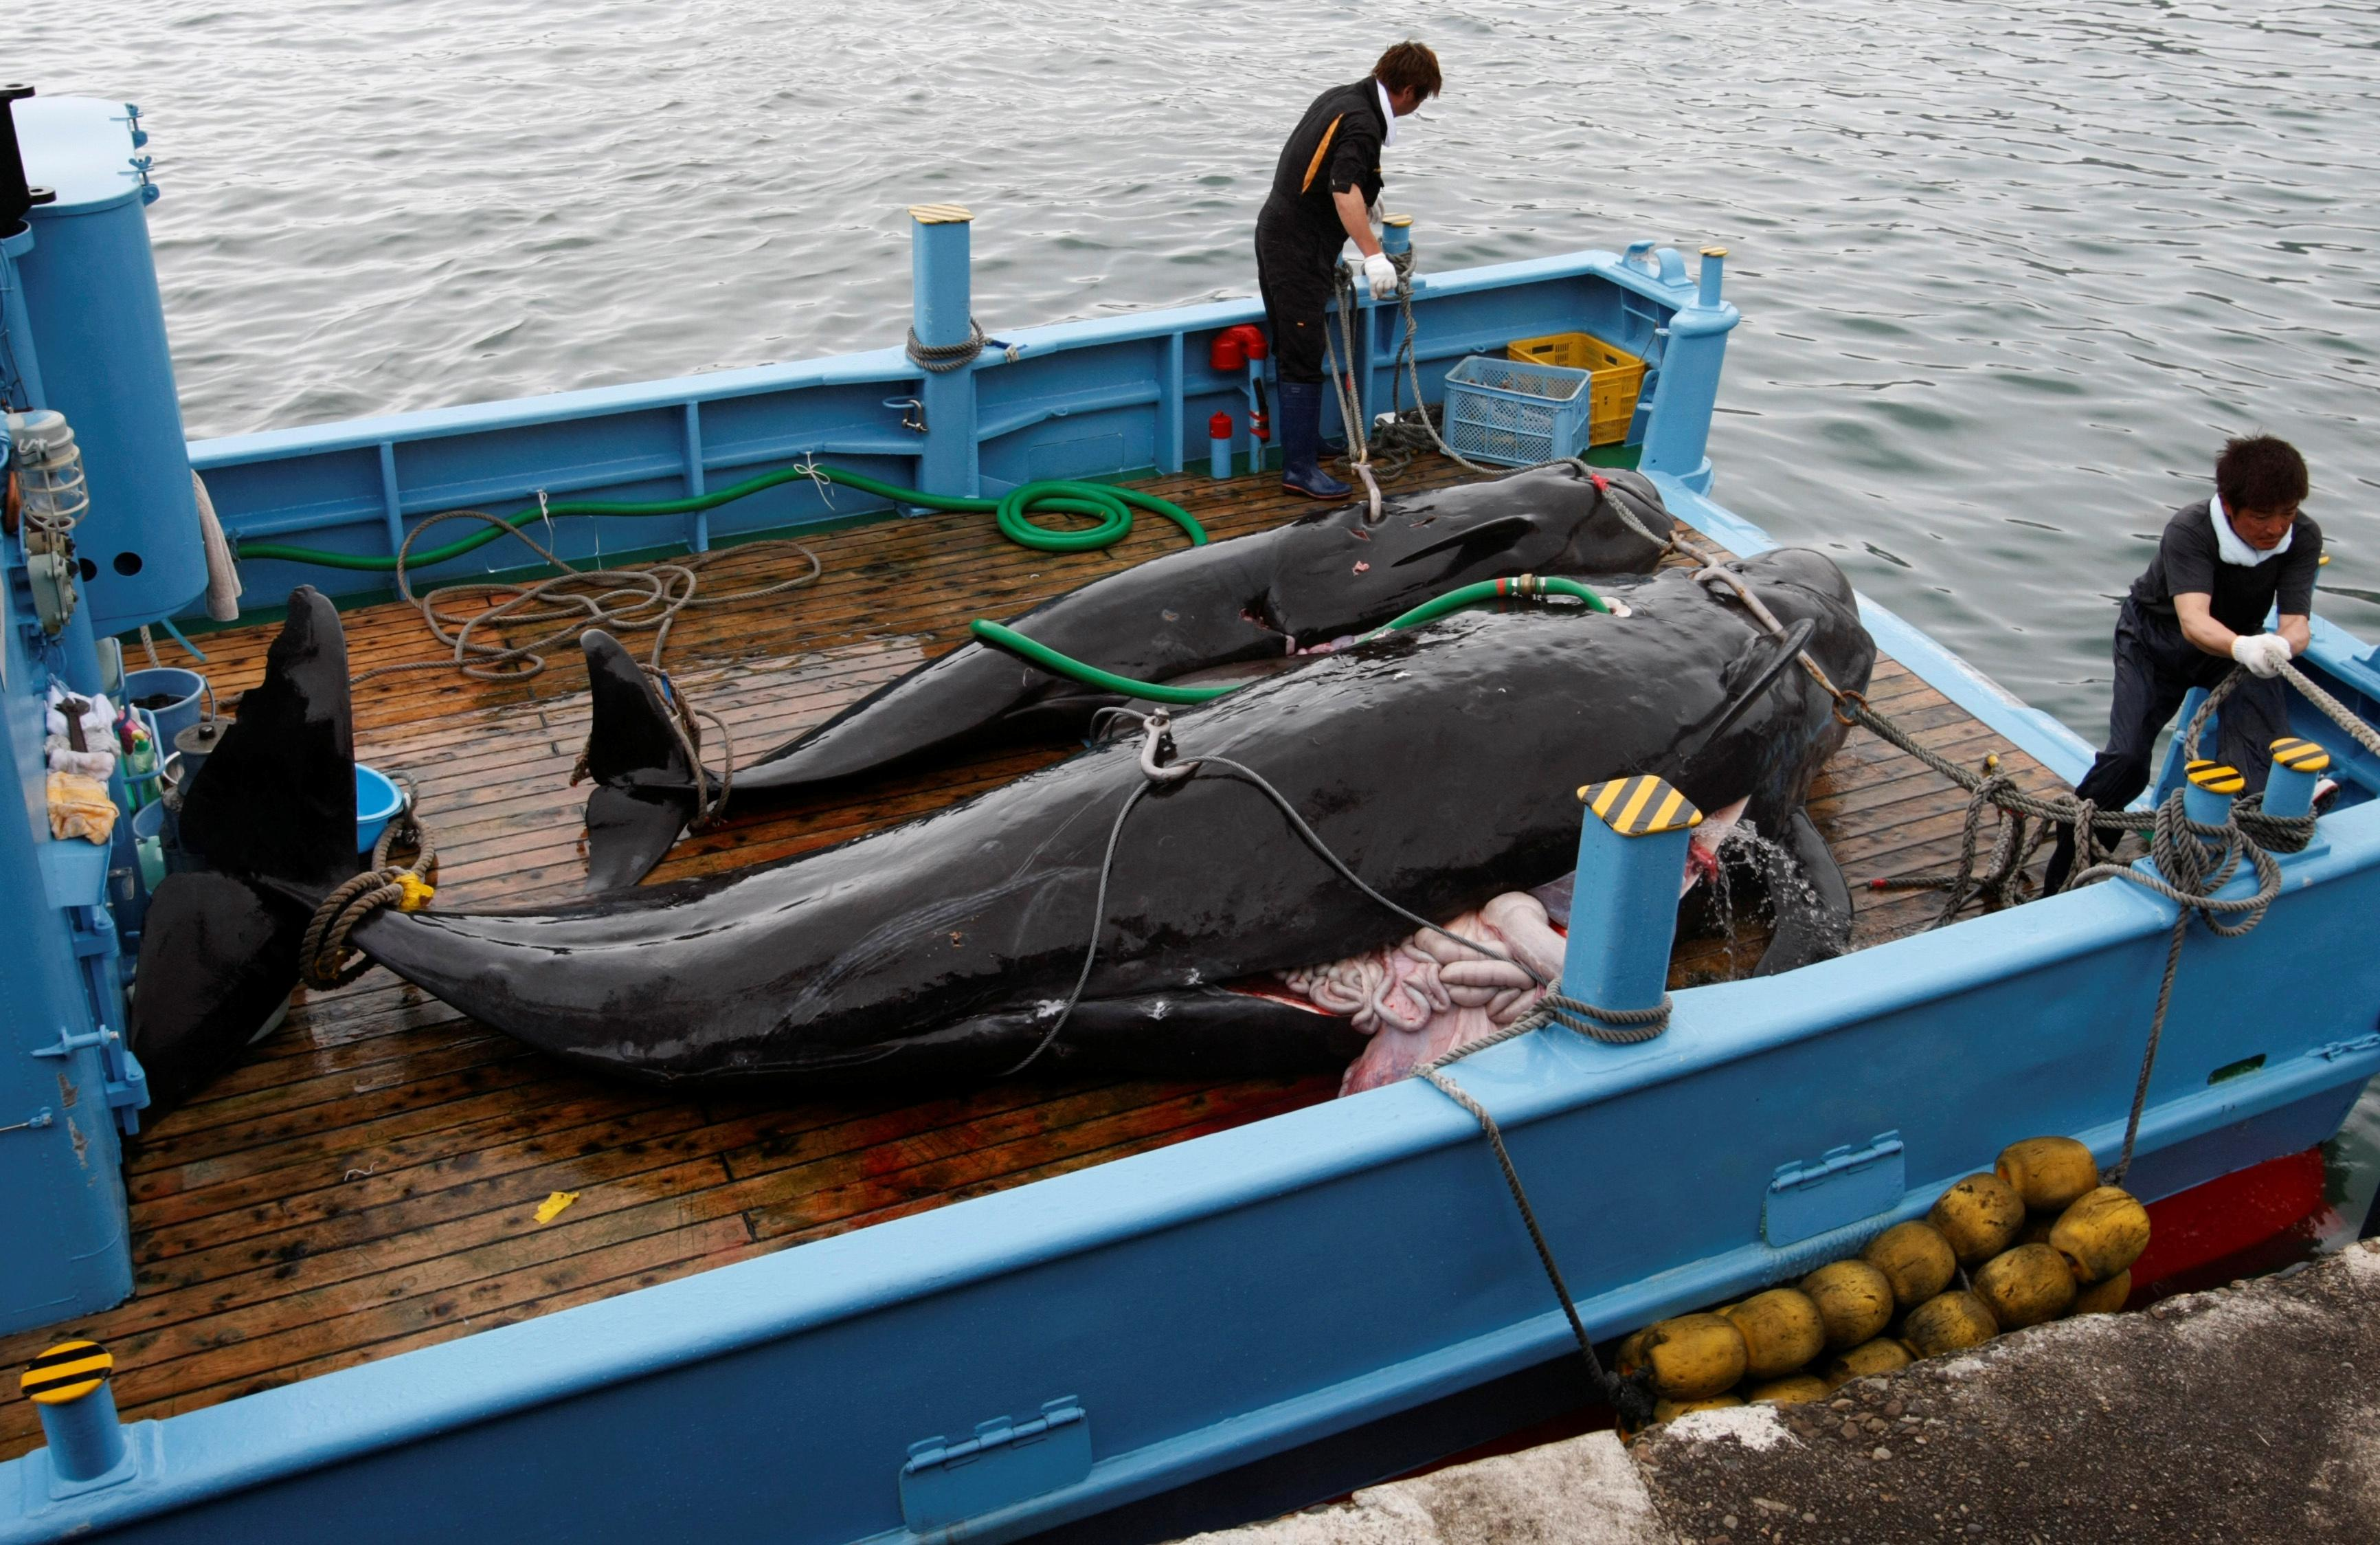 Explainer: What's behind Japan's support of whaling?